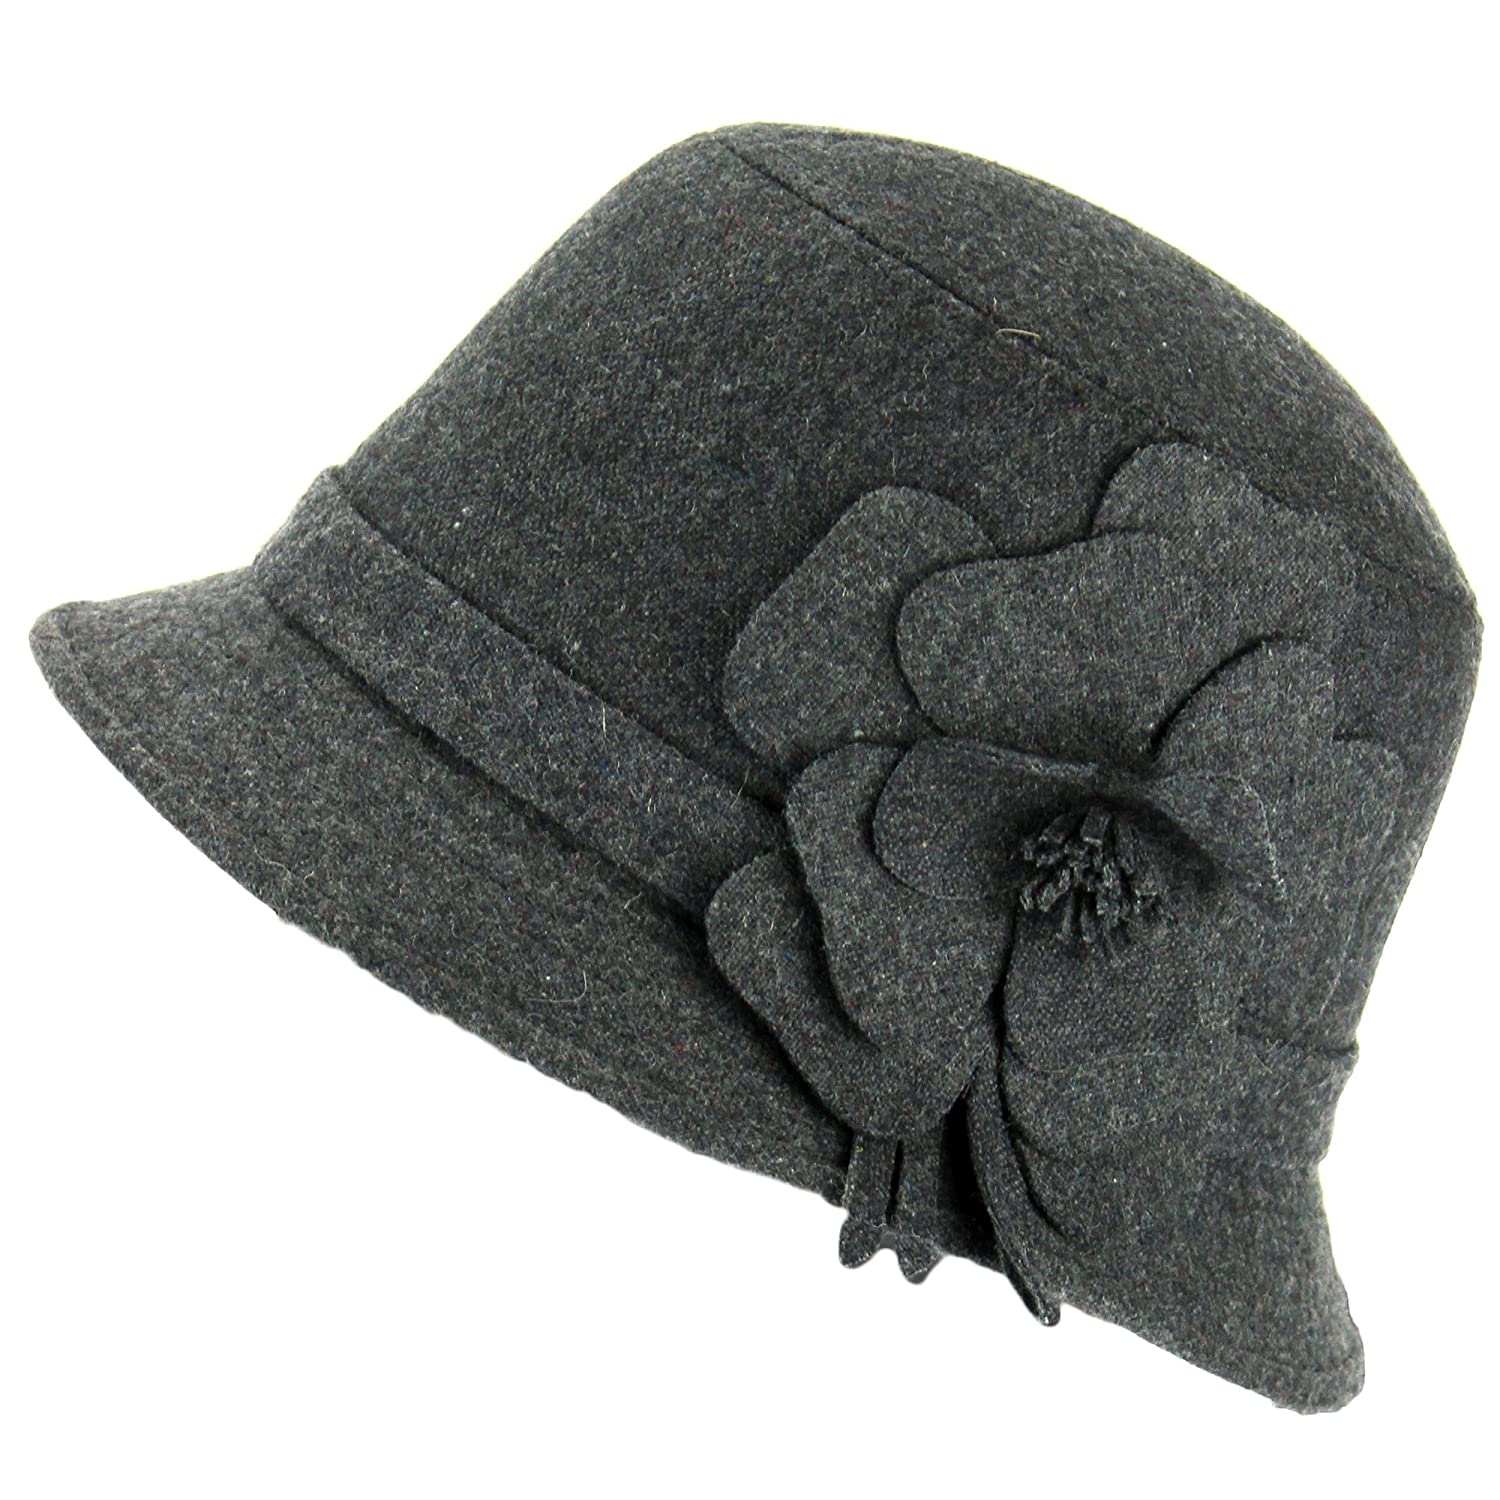 GREY CLOCHE HAT WITH FLOWER DECORATION WOOL BLEND 20s 30s Style